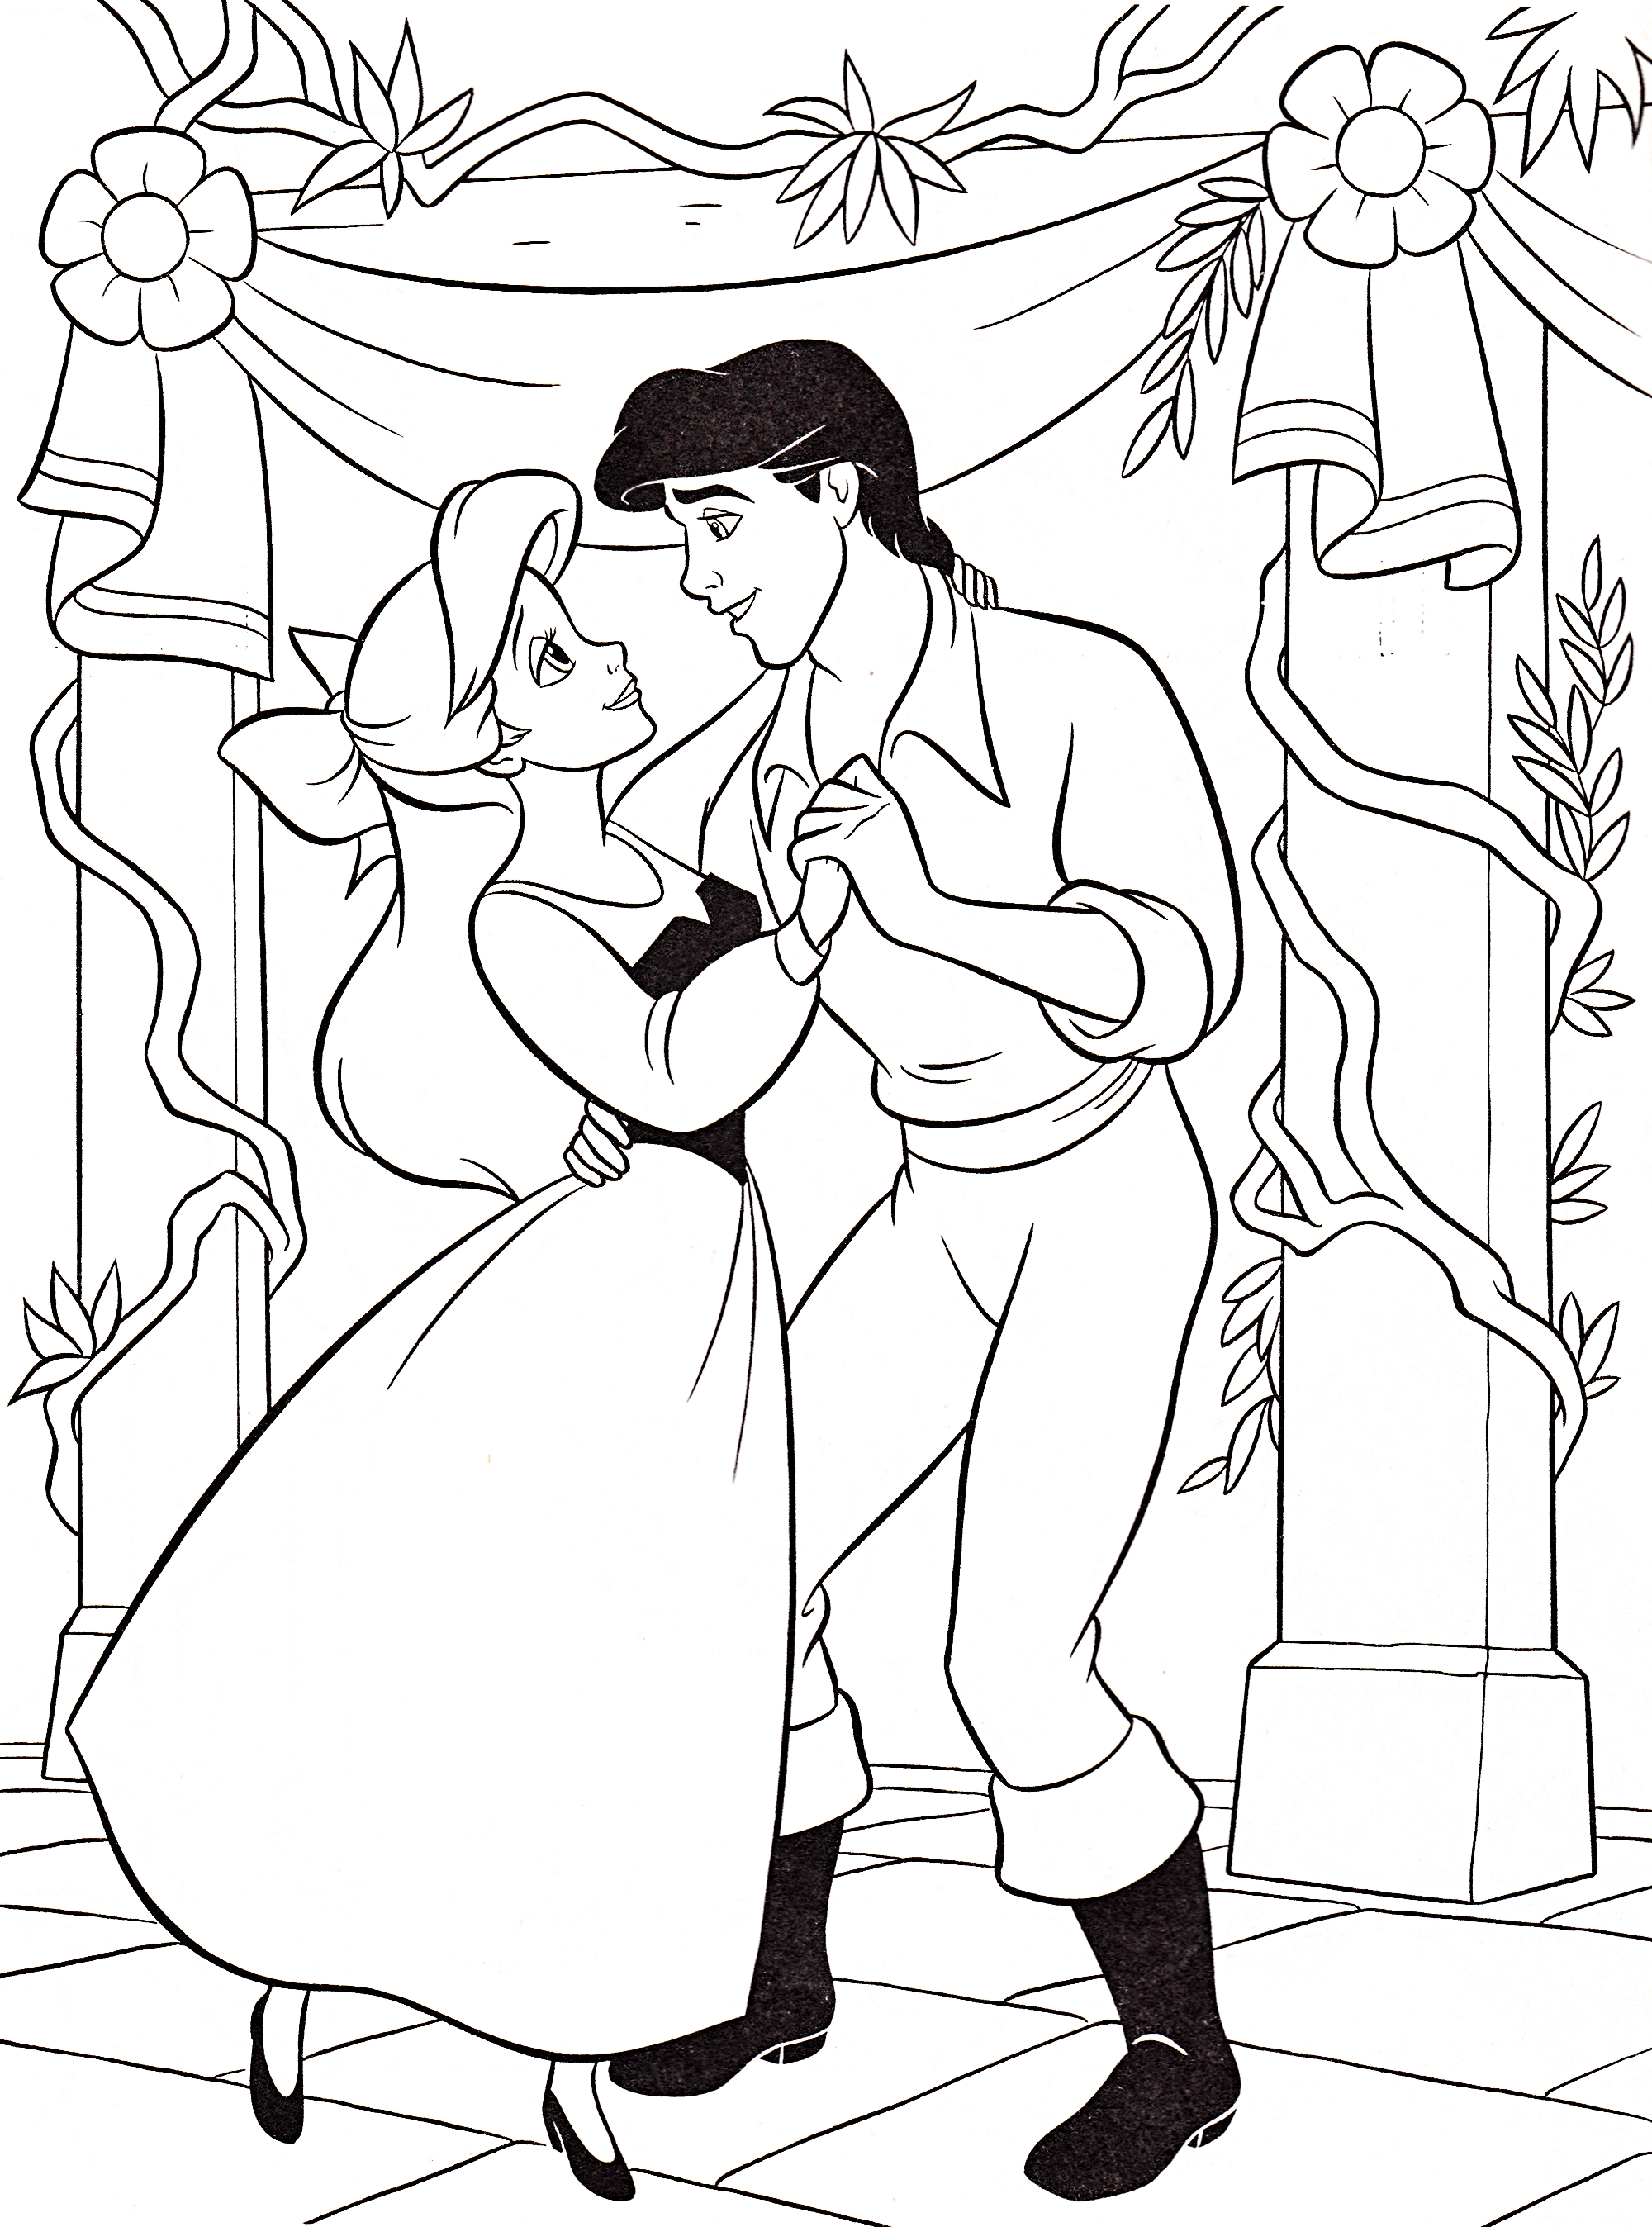 Disney Coloring Pages (3)